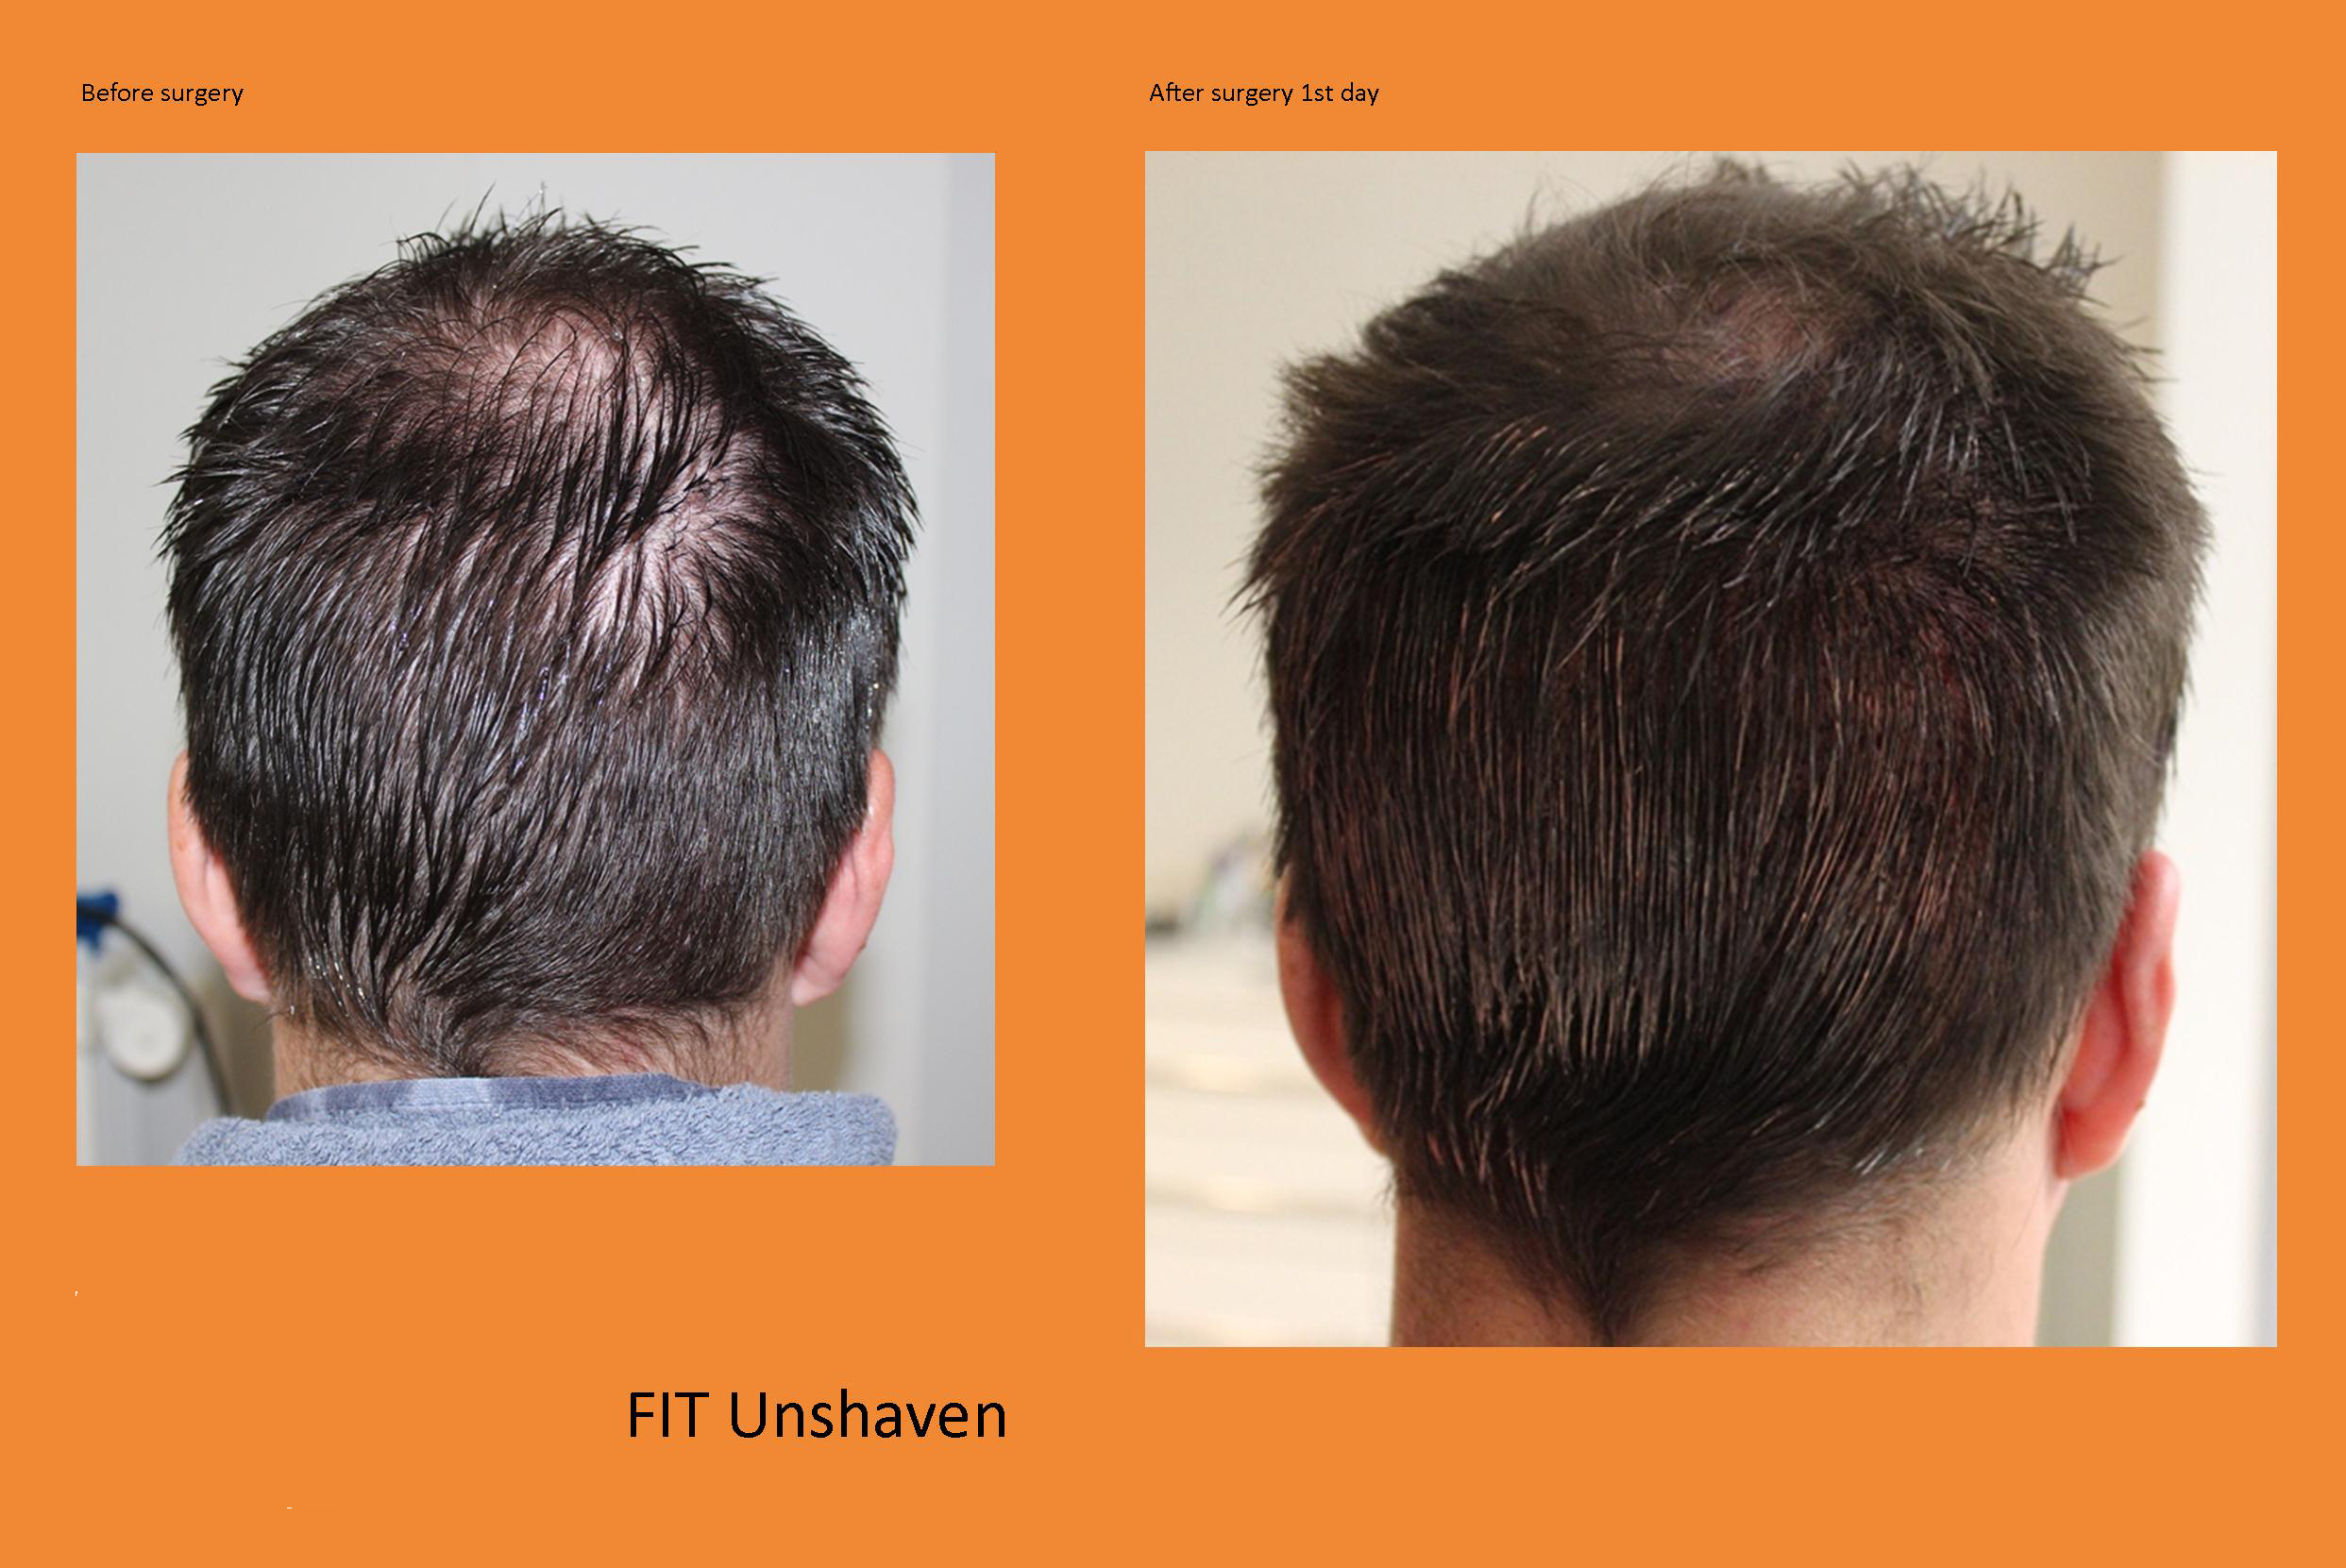 U-FUE Hairtransplant Extraction without shaving